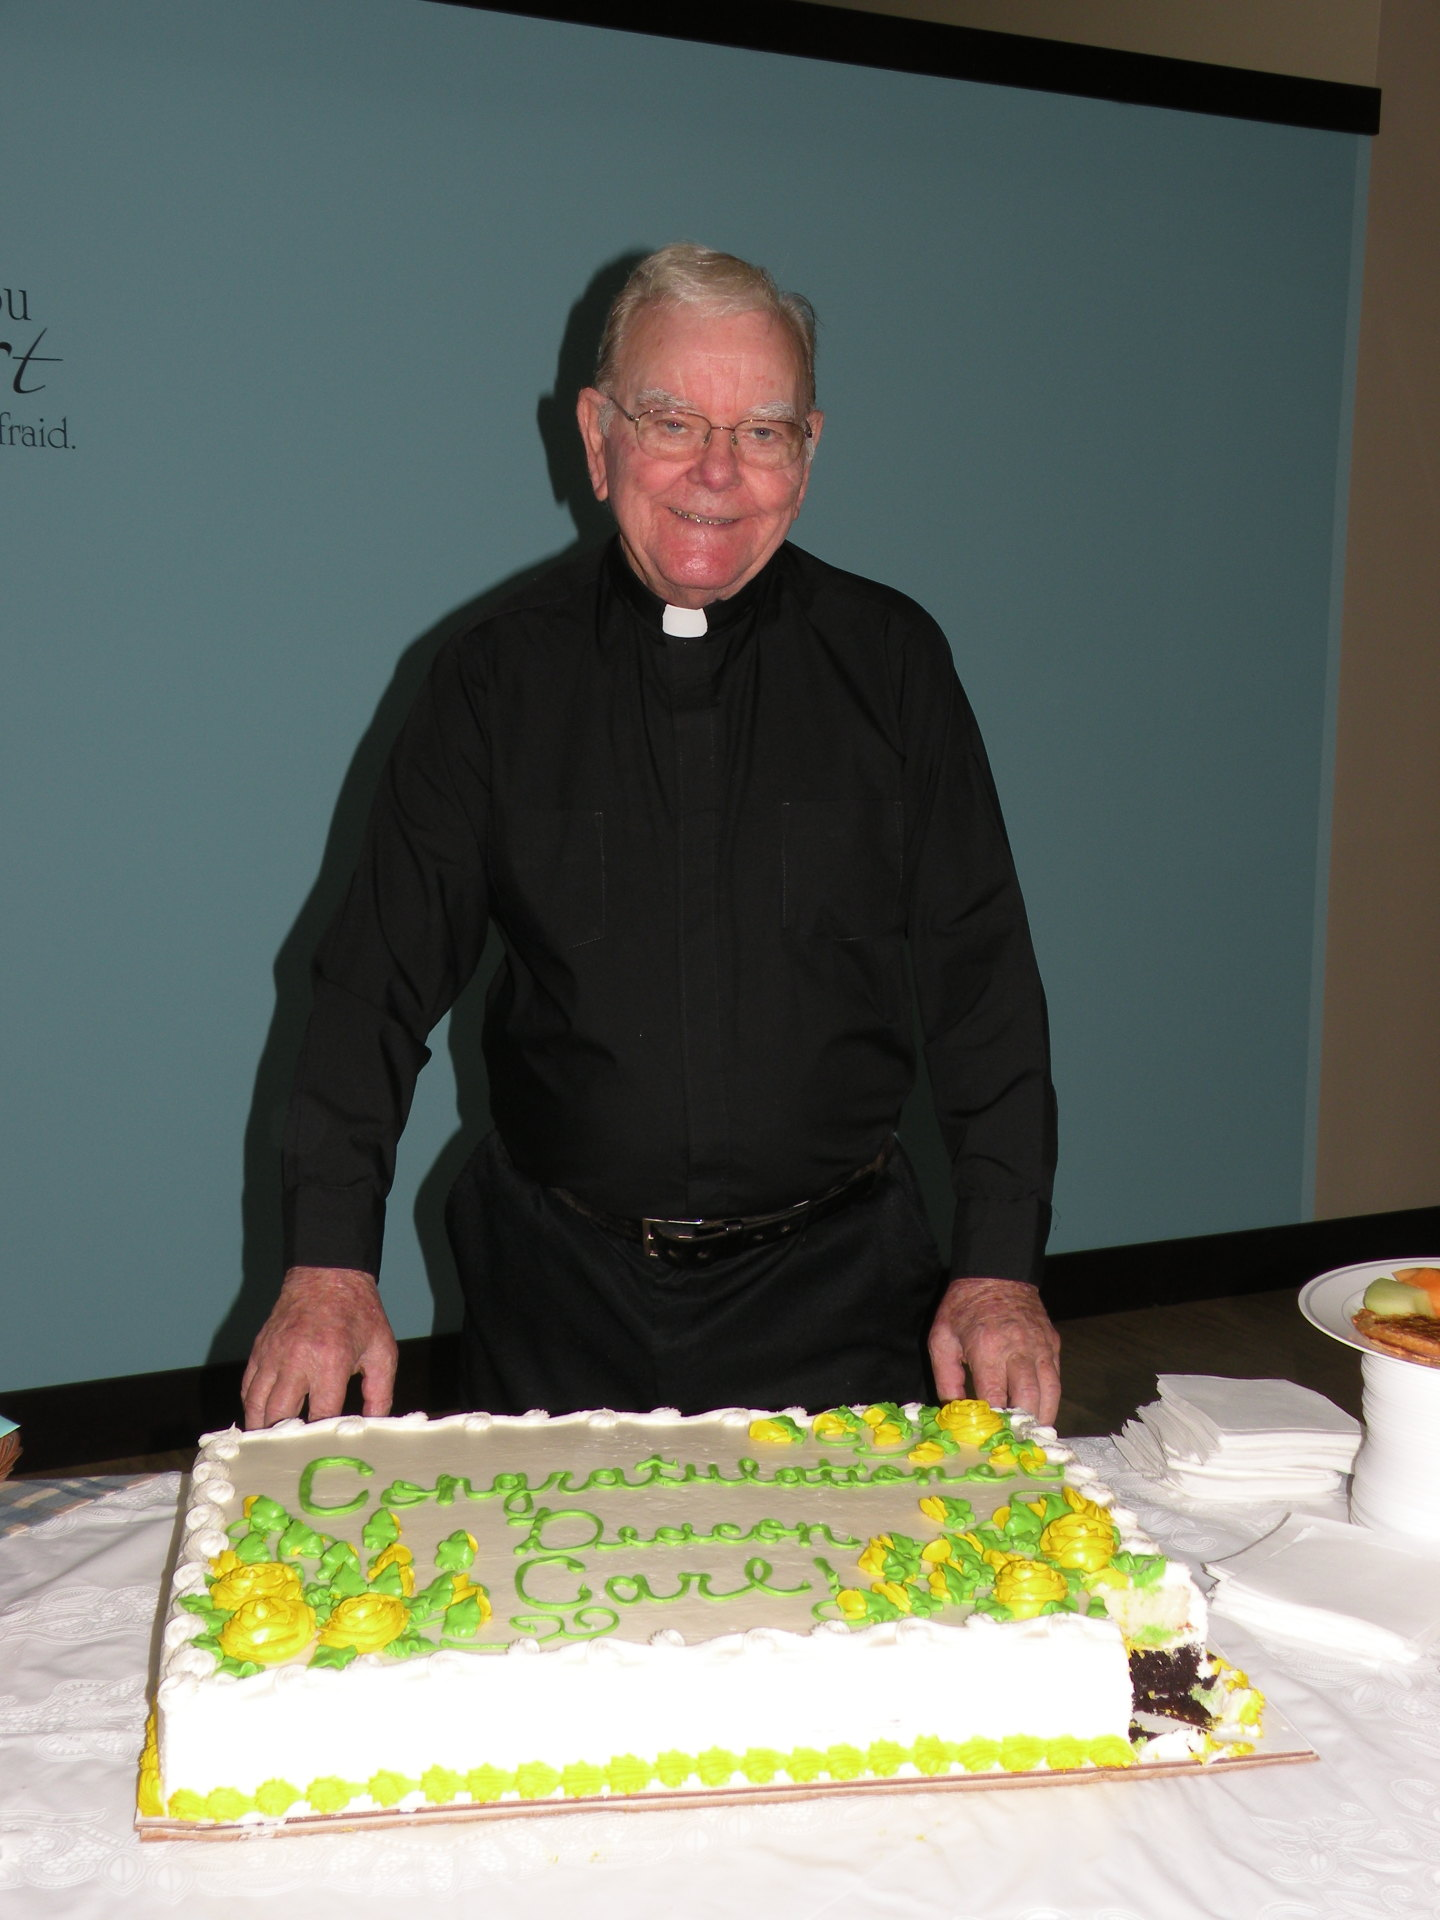 Deacon Carl celebrates 30 years since his ordination.